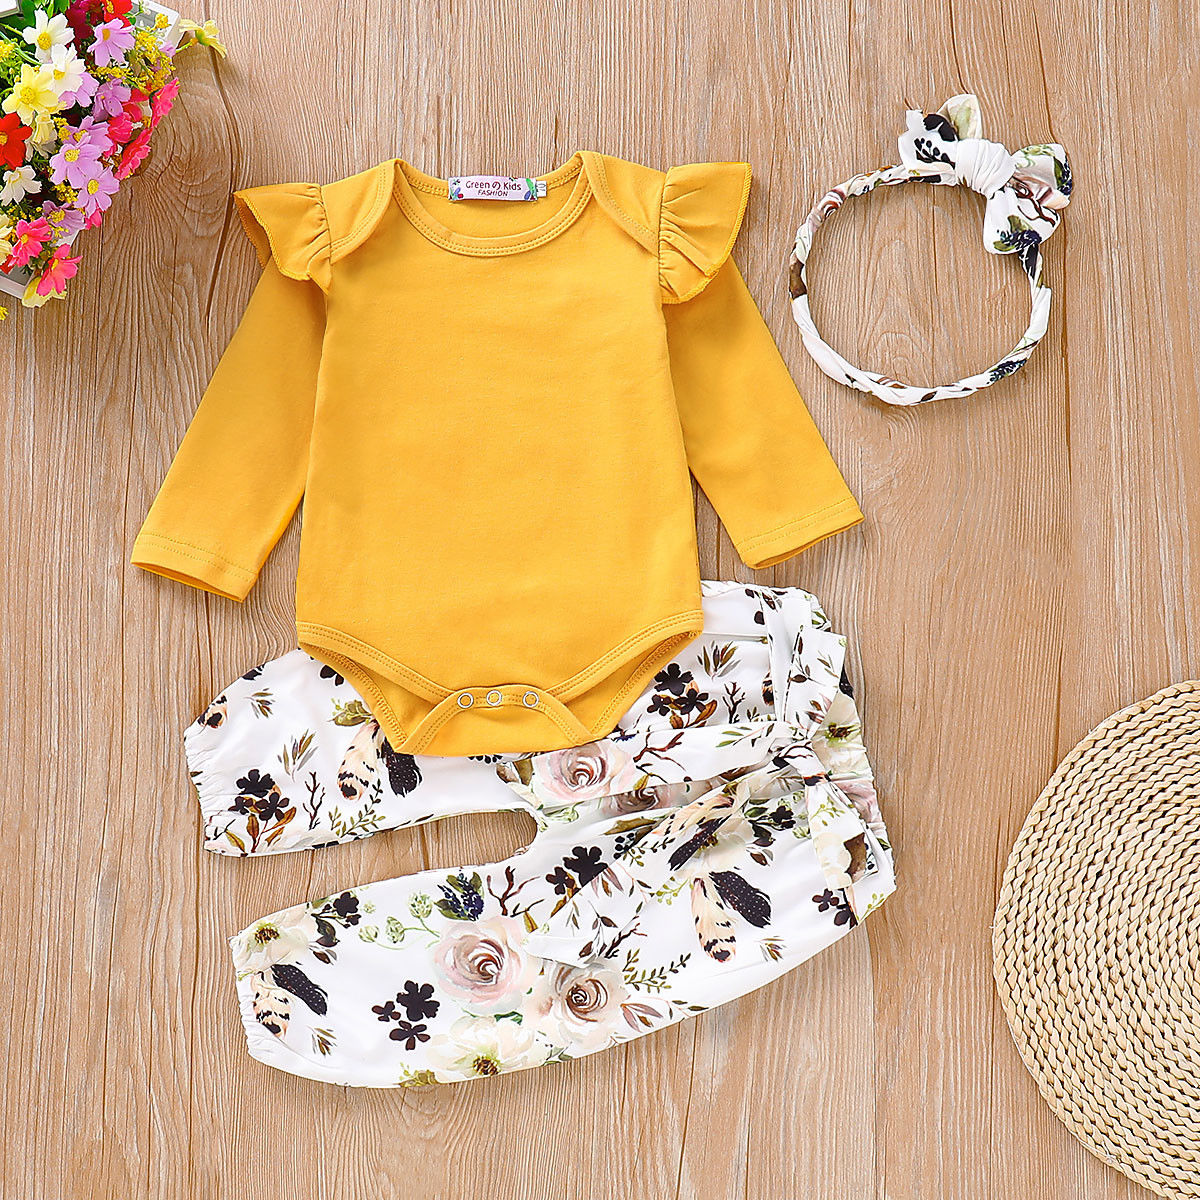 3 Piece Long Sleeves Clothing Set